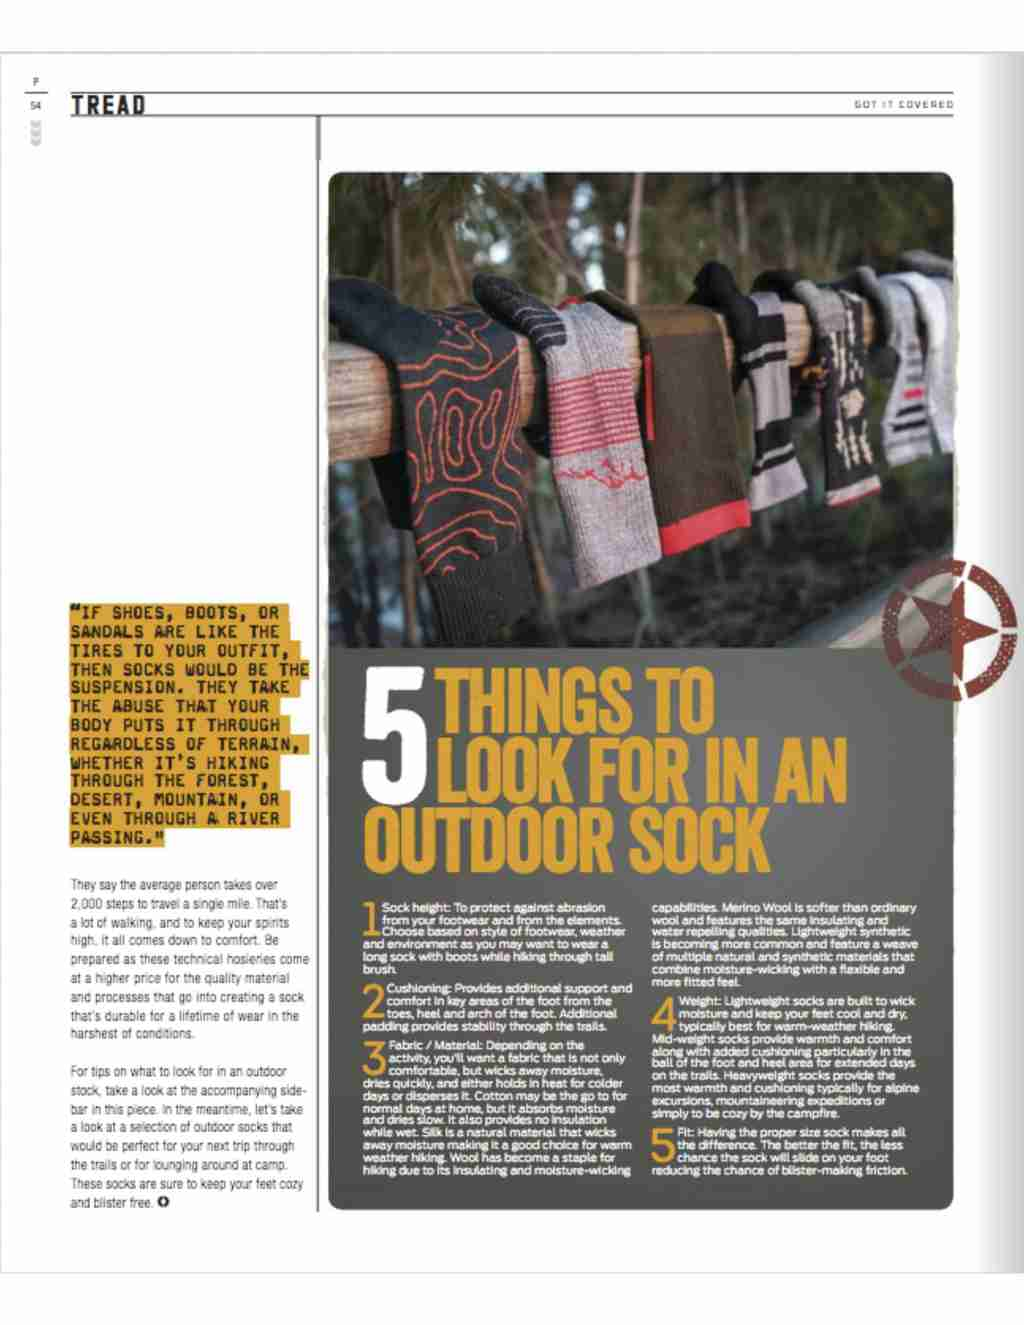 5 Things To Look For In An Outdoor Sock